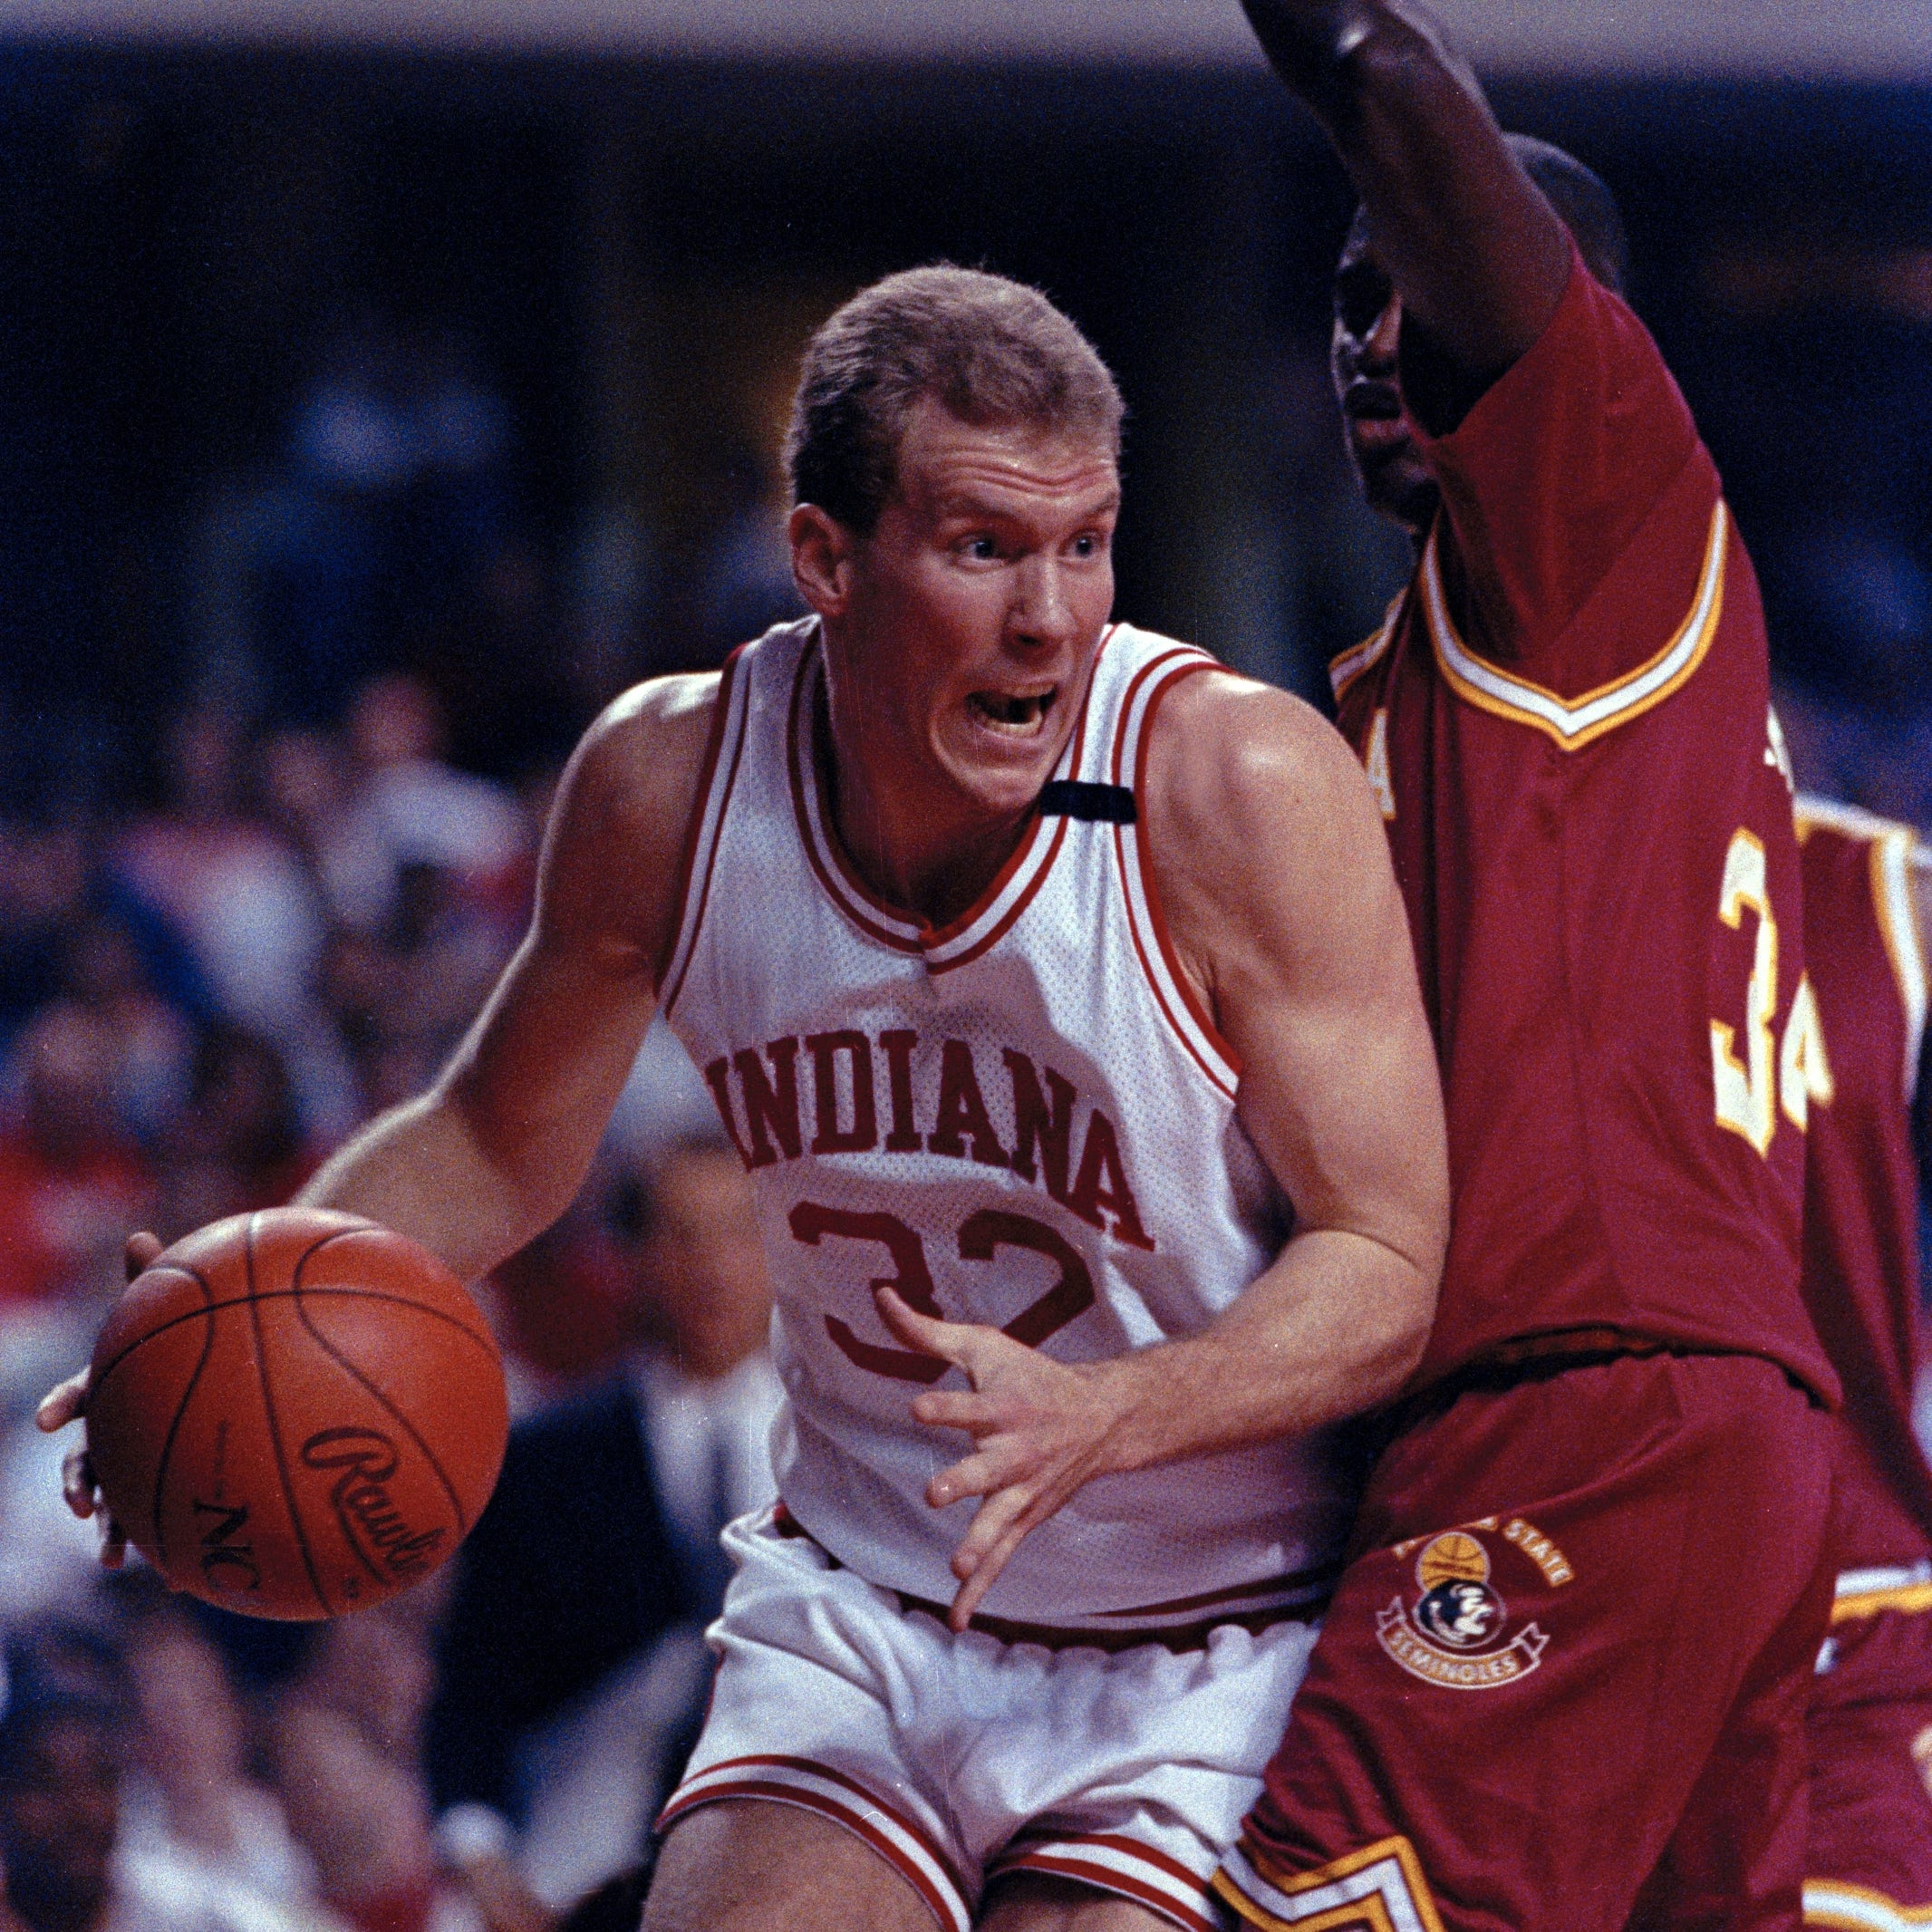 Former IU basketball star Eric Anderson dies at 48